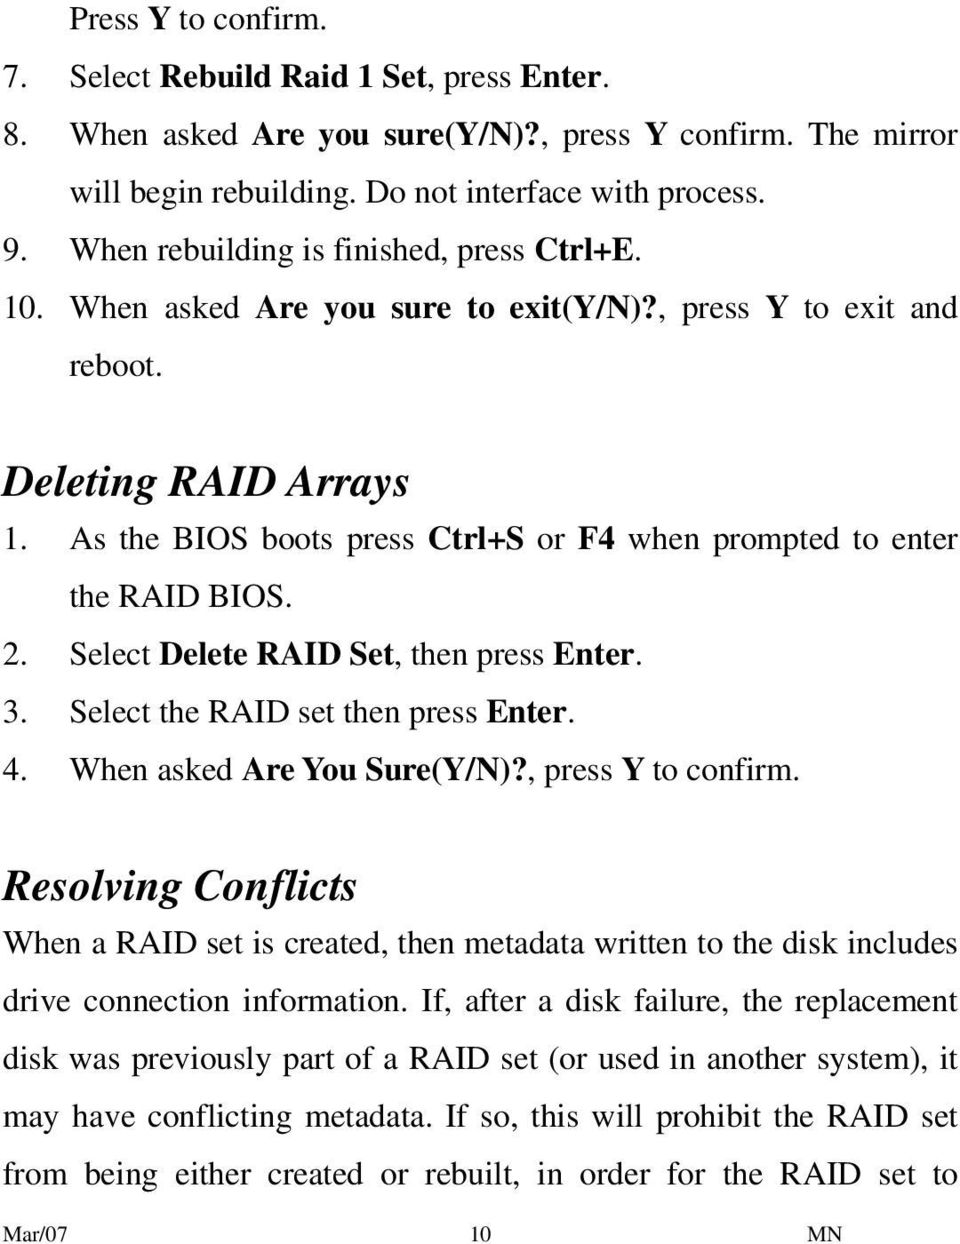 As the BIOS boots press Ctrl+S or F4 when prompted to enter the RAID BIOS. 2. Select Delete RAID Set, then press Enter. 3. Select the RAID set then press Enter. 4. When asked Are You Sure(Y/N)?